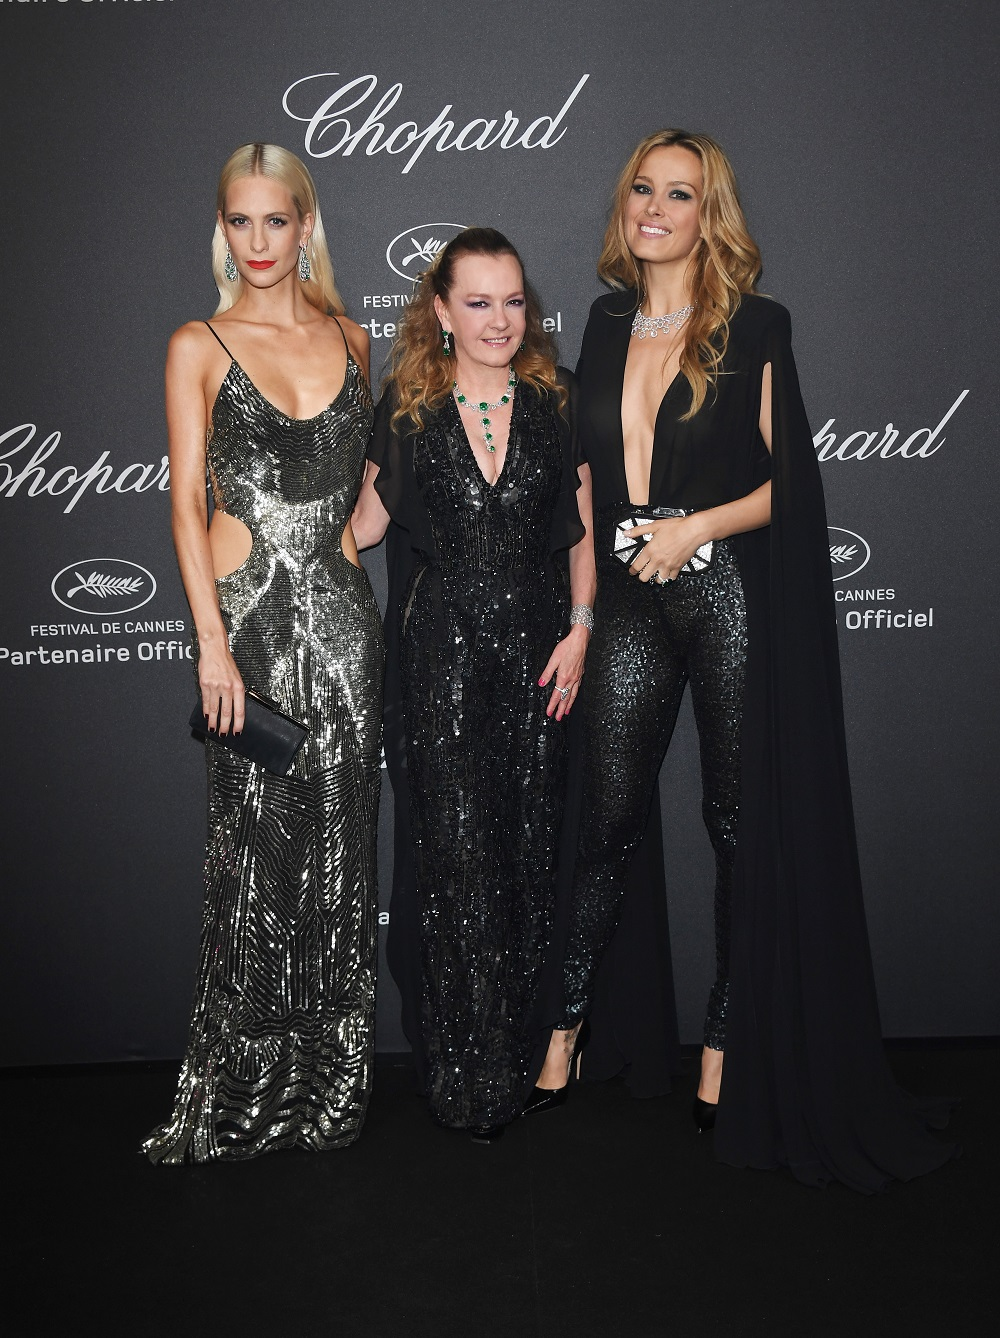 CANNES, FRANCE - MAY 16: (R-L) Petra Nemcova, Caroline Scheufele and Poppy Delevigne attend Chopard Wild Party as part of The 69th Annual Cannes Film Festival at Port Canto on May 16, 2016 in Cannes, France. (Photo by Daniele Venturelli/Getty Images) *** Local Caption *** Petra Nemcova;Poppy Delevigne;Caroline Scheufele